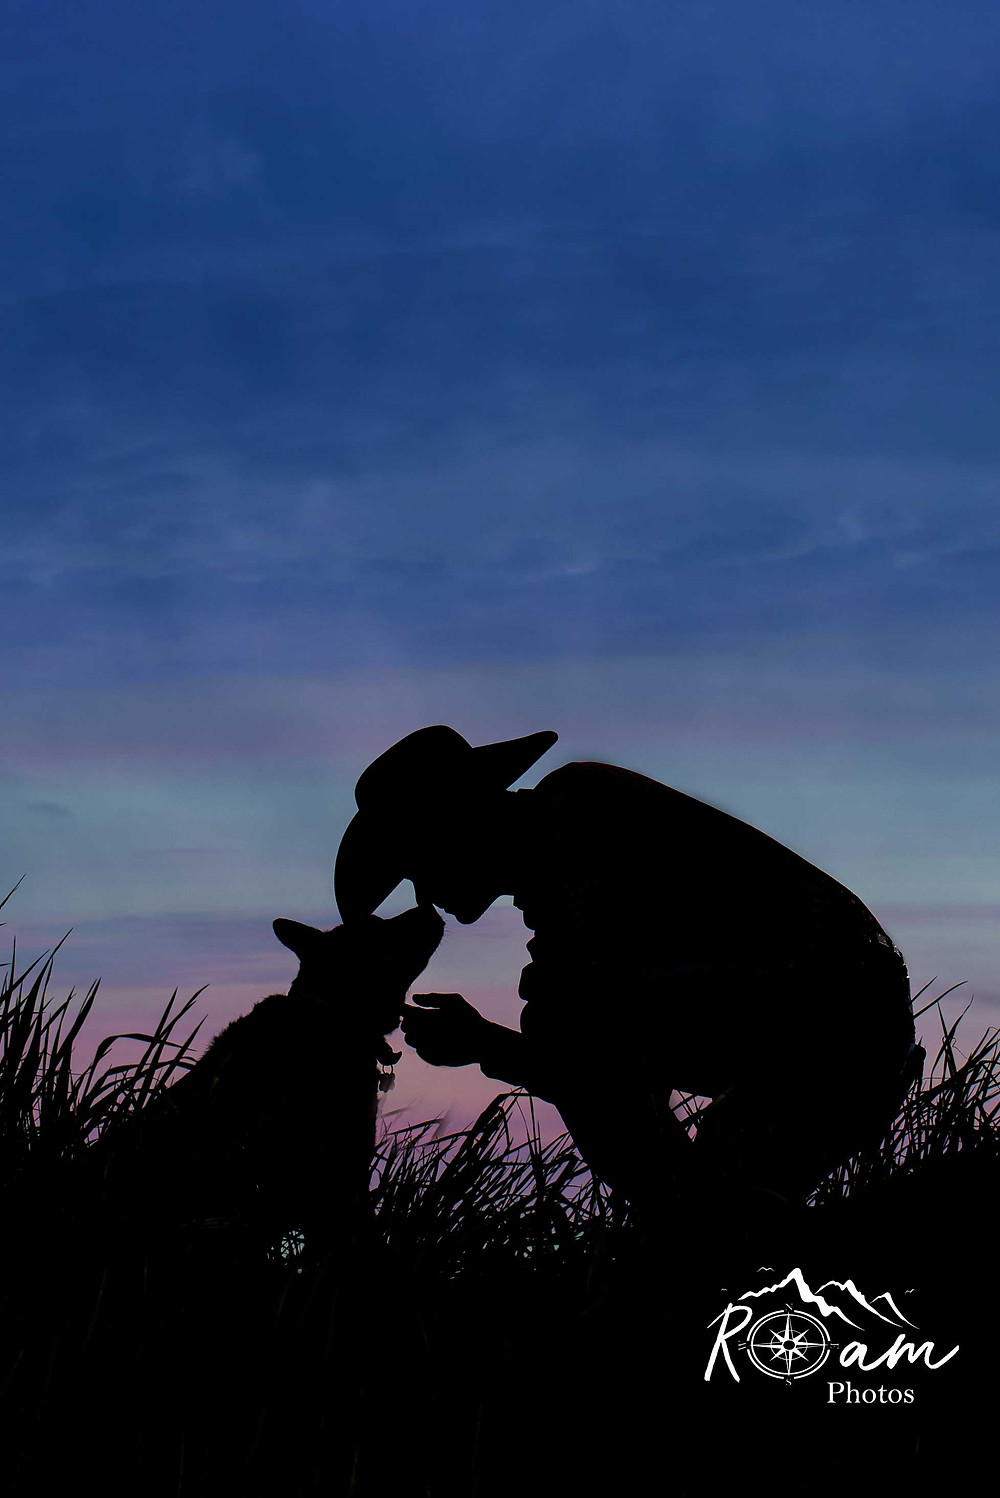 Cowboy and dog silouette